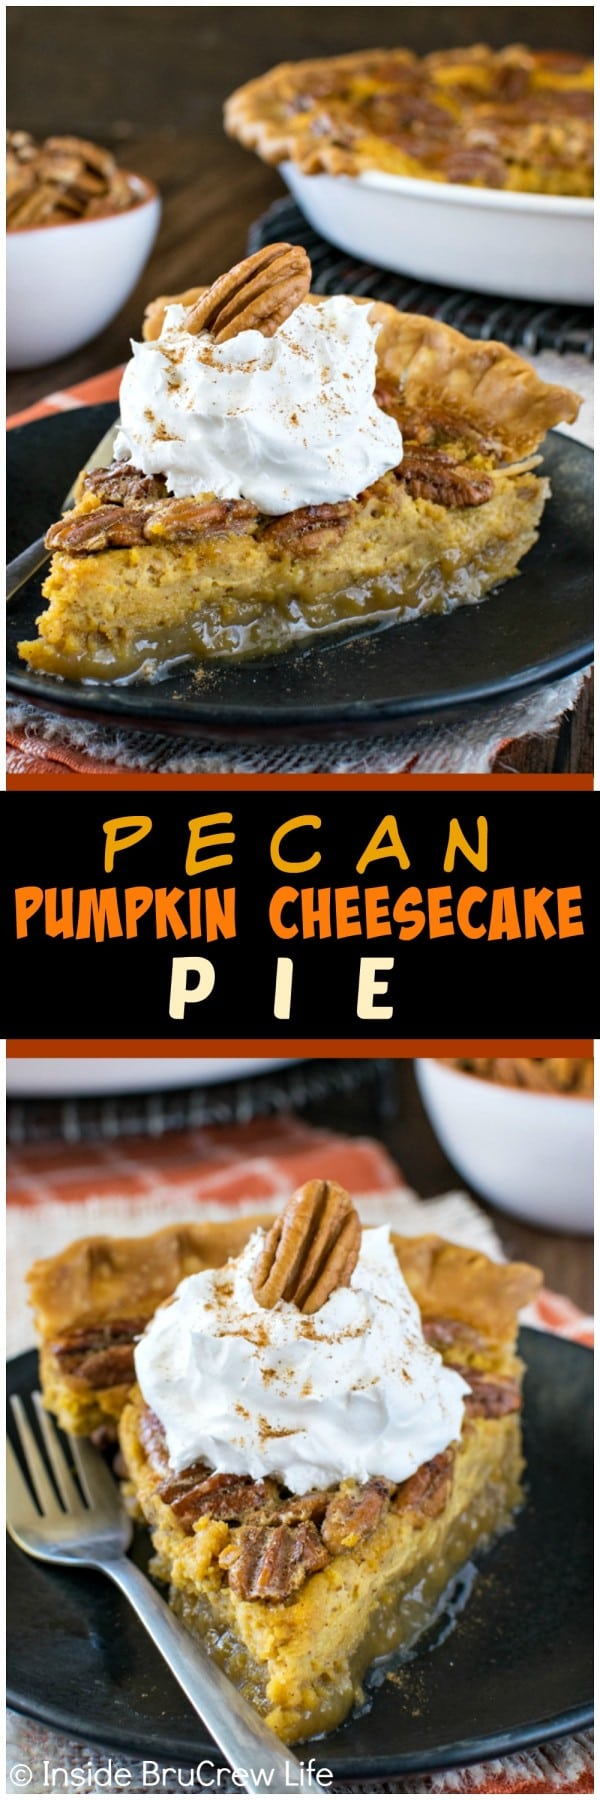 Pecan Pumpkin Cheesecake Pie - sweet layers of pumpkin cheesecake and pecan pie will have you reaching for another slice. Great fall dessert recipe! #pie #pecanpie #pumpkincheesecake #recipe #fall #thanksgiving #pumpkin